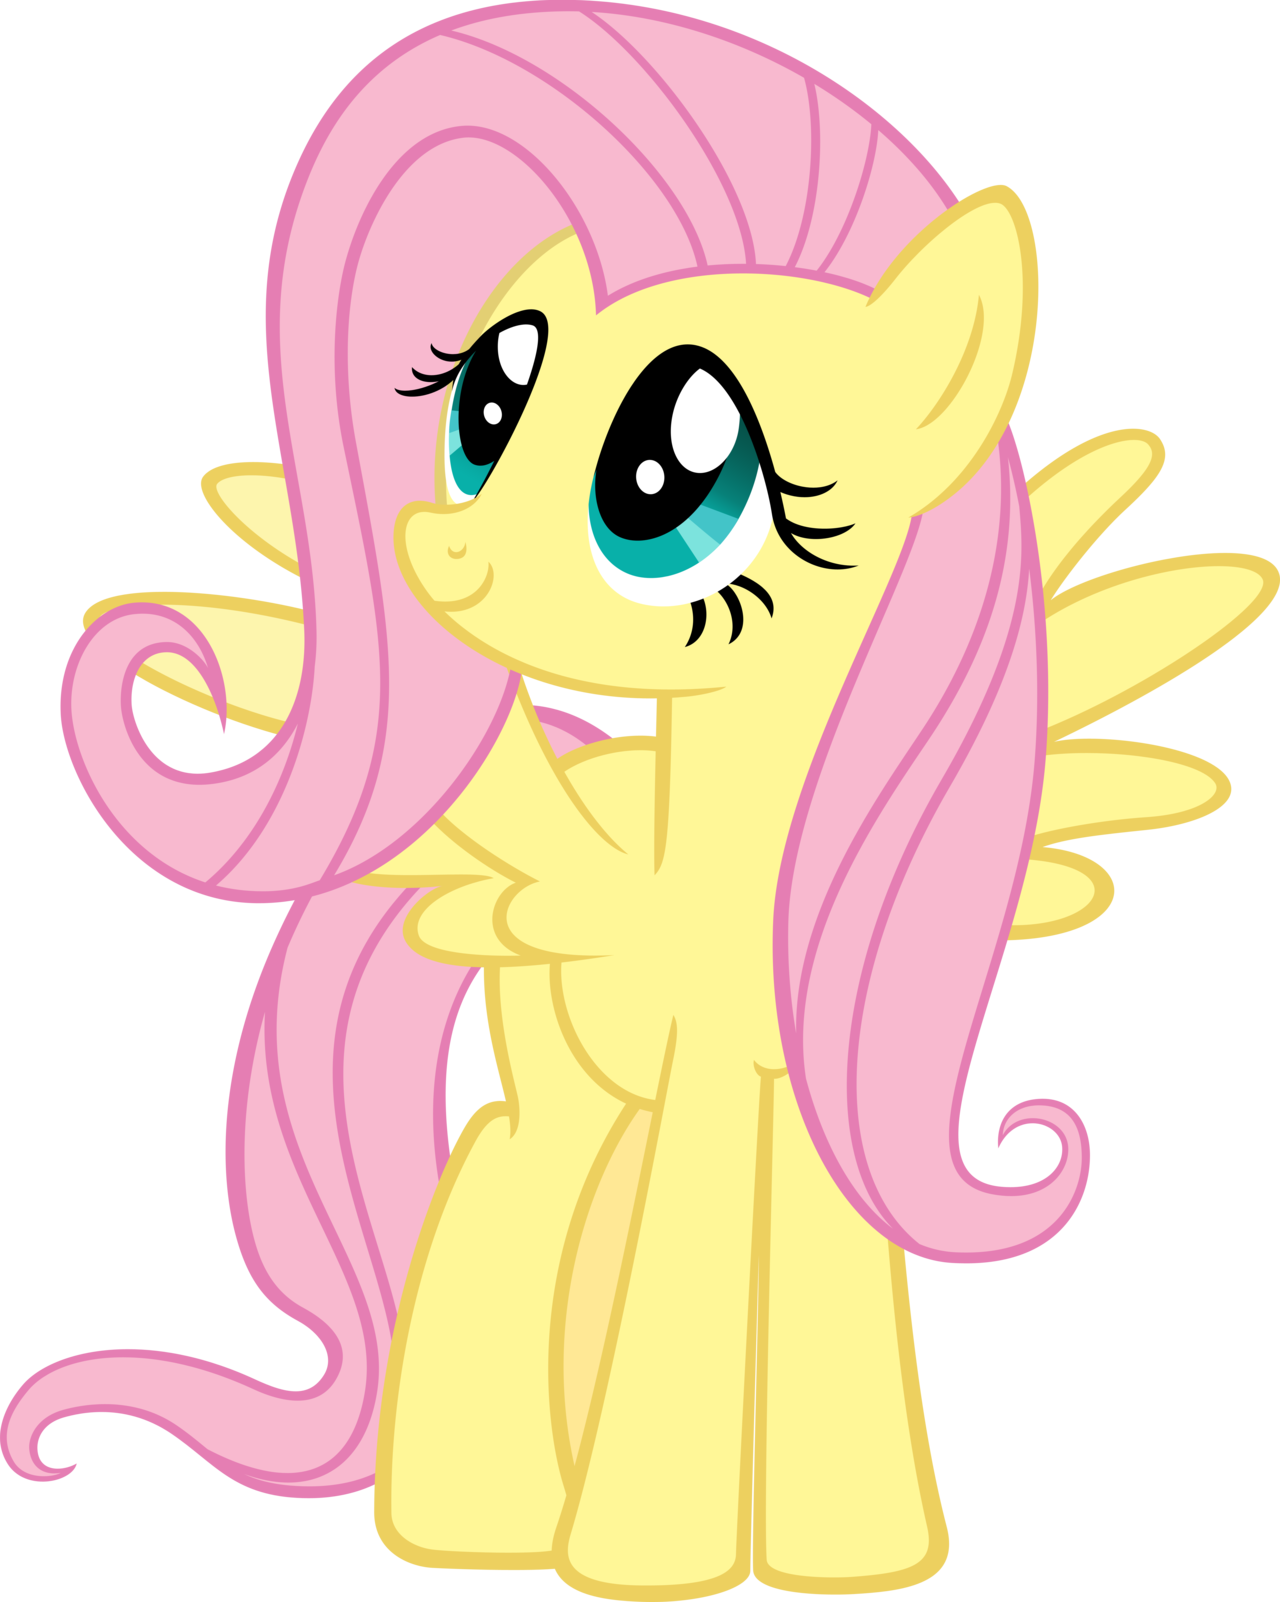 image fluttershy my little pony friendship is magic png ichc